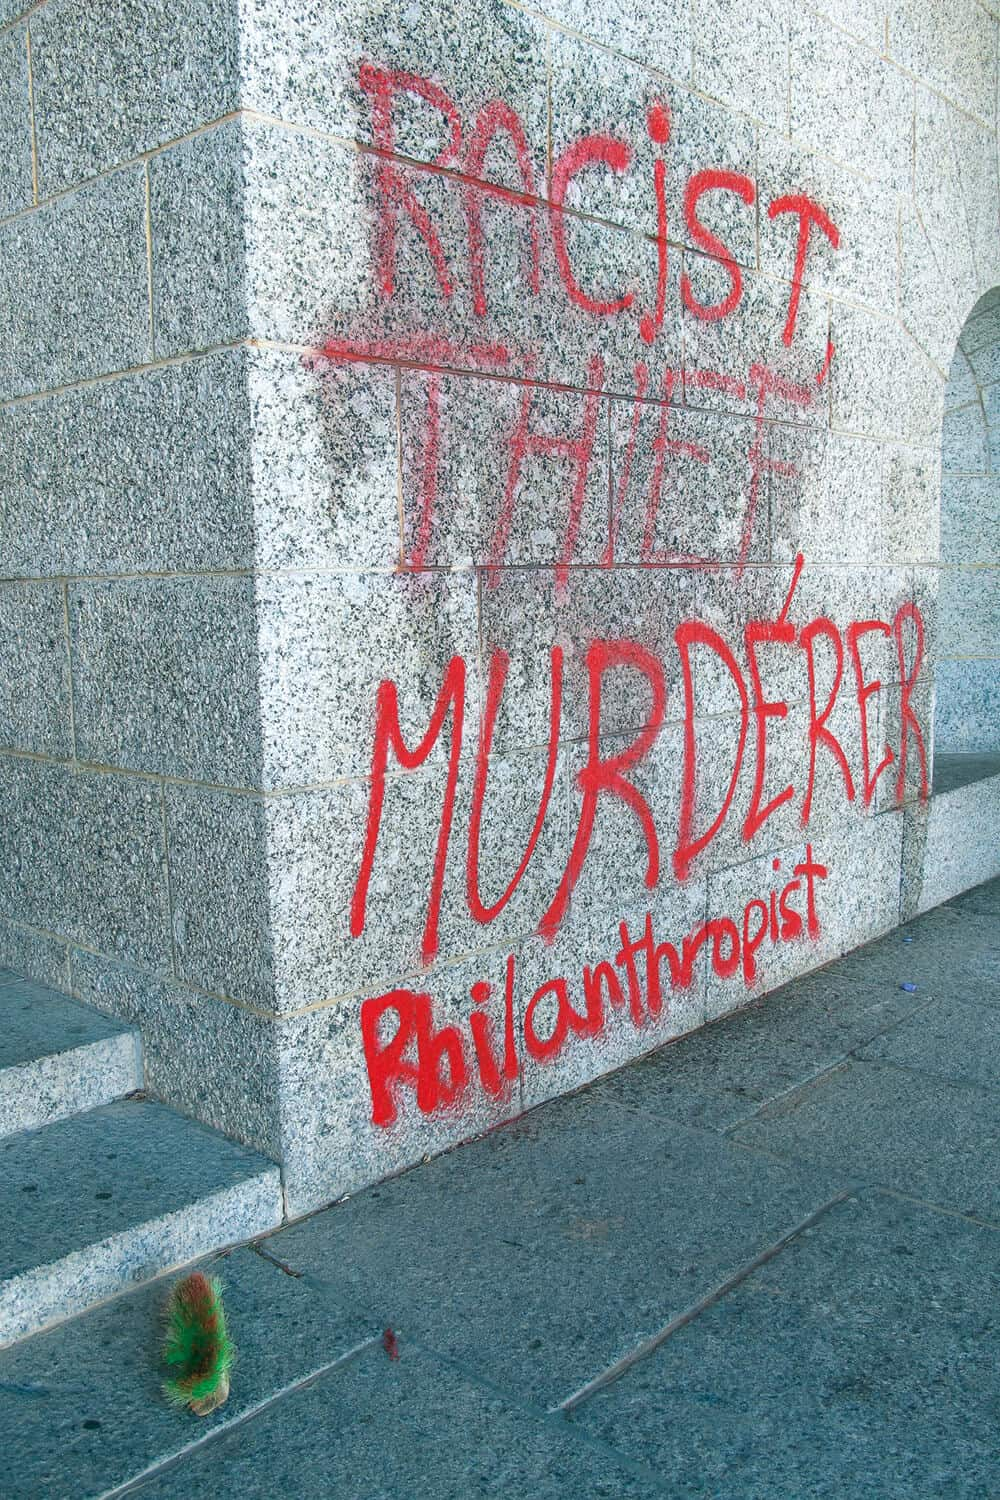 """Racist, Thief, Murderer, Philanthropist"" read graffiti at Rhodes Memorial in Cape Town. Photograph: Kim Gurney"